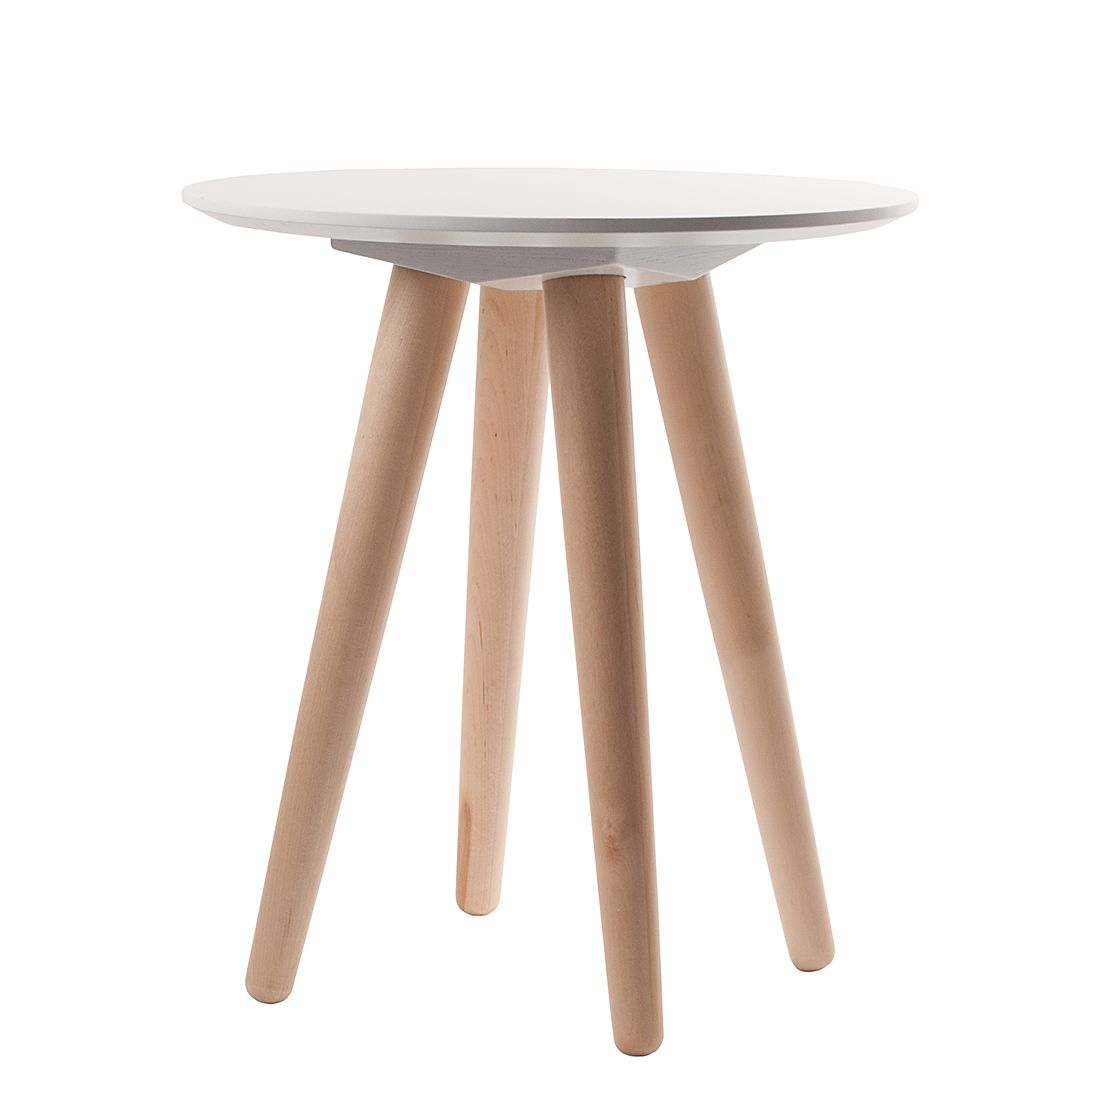 Table d'appoint Bee I - Blanc / Bouleau massif, Zuiver